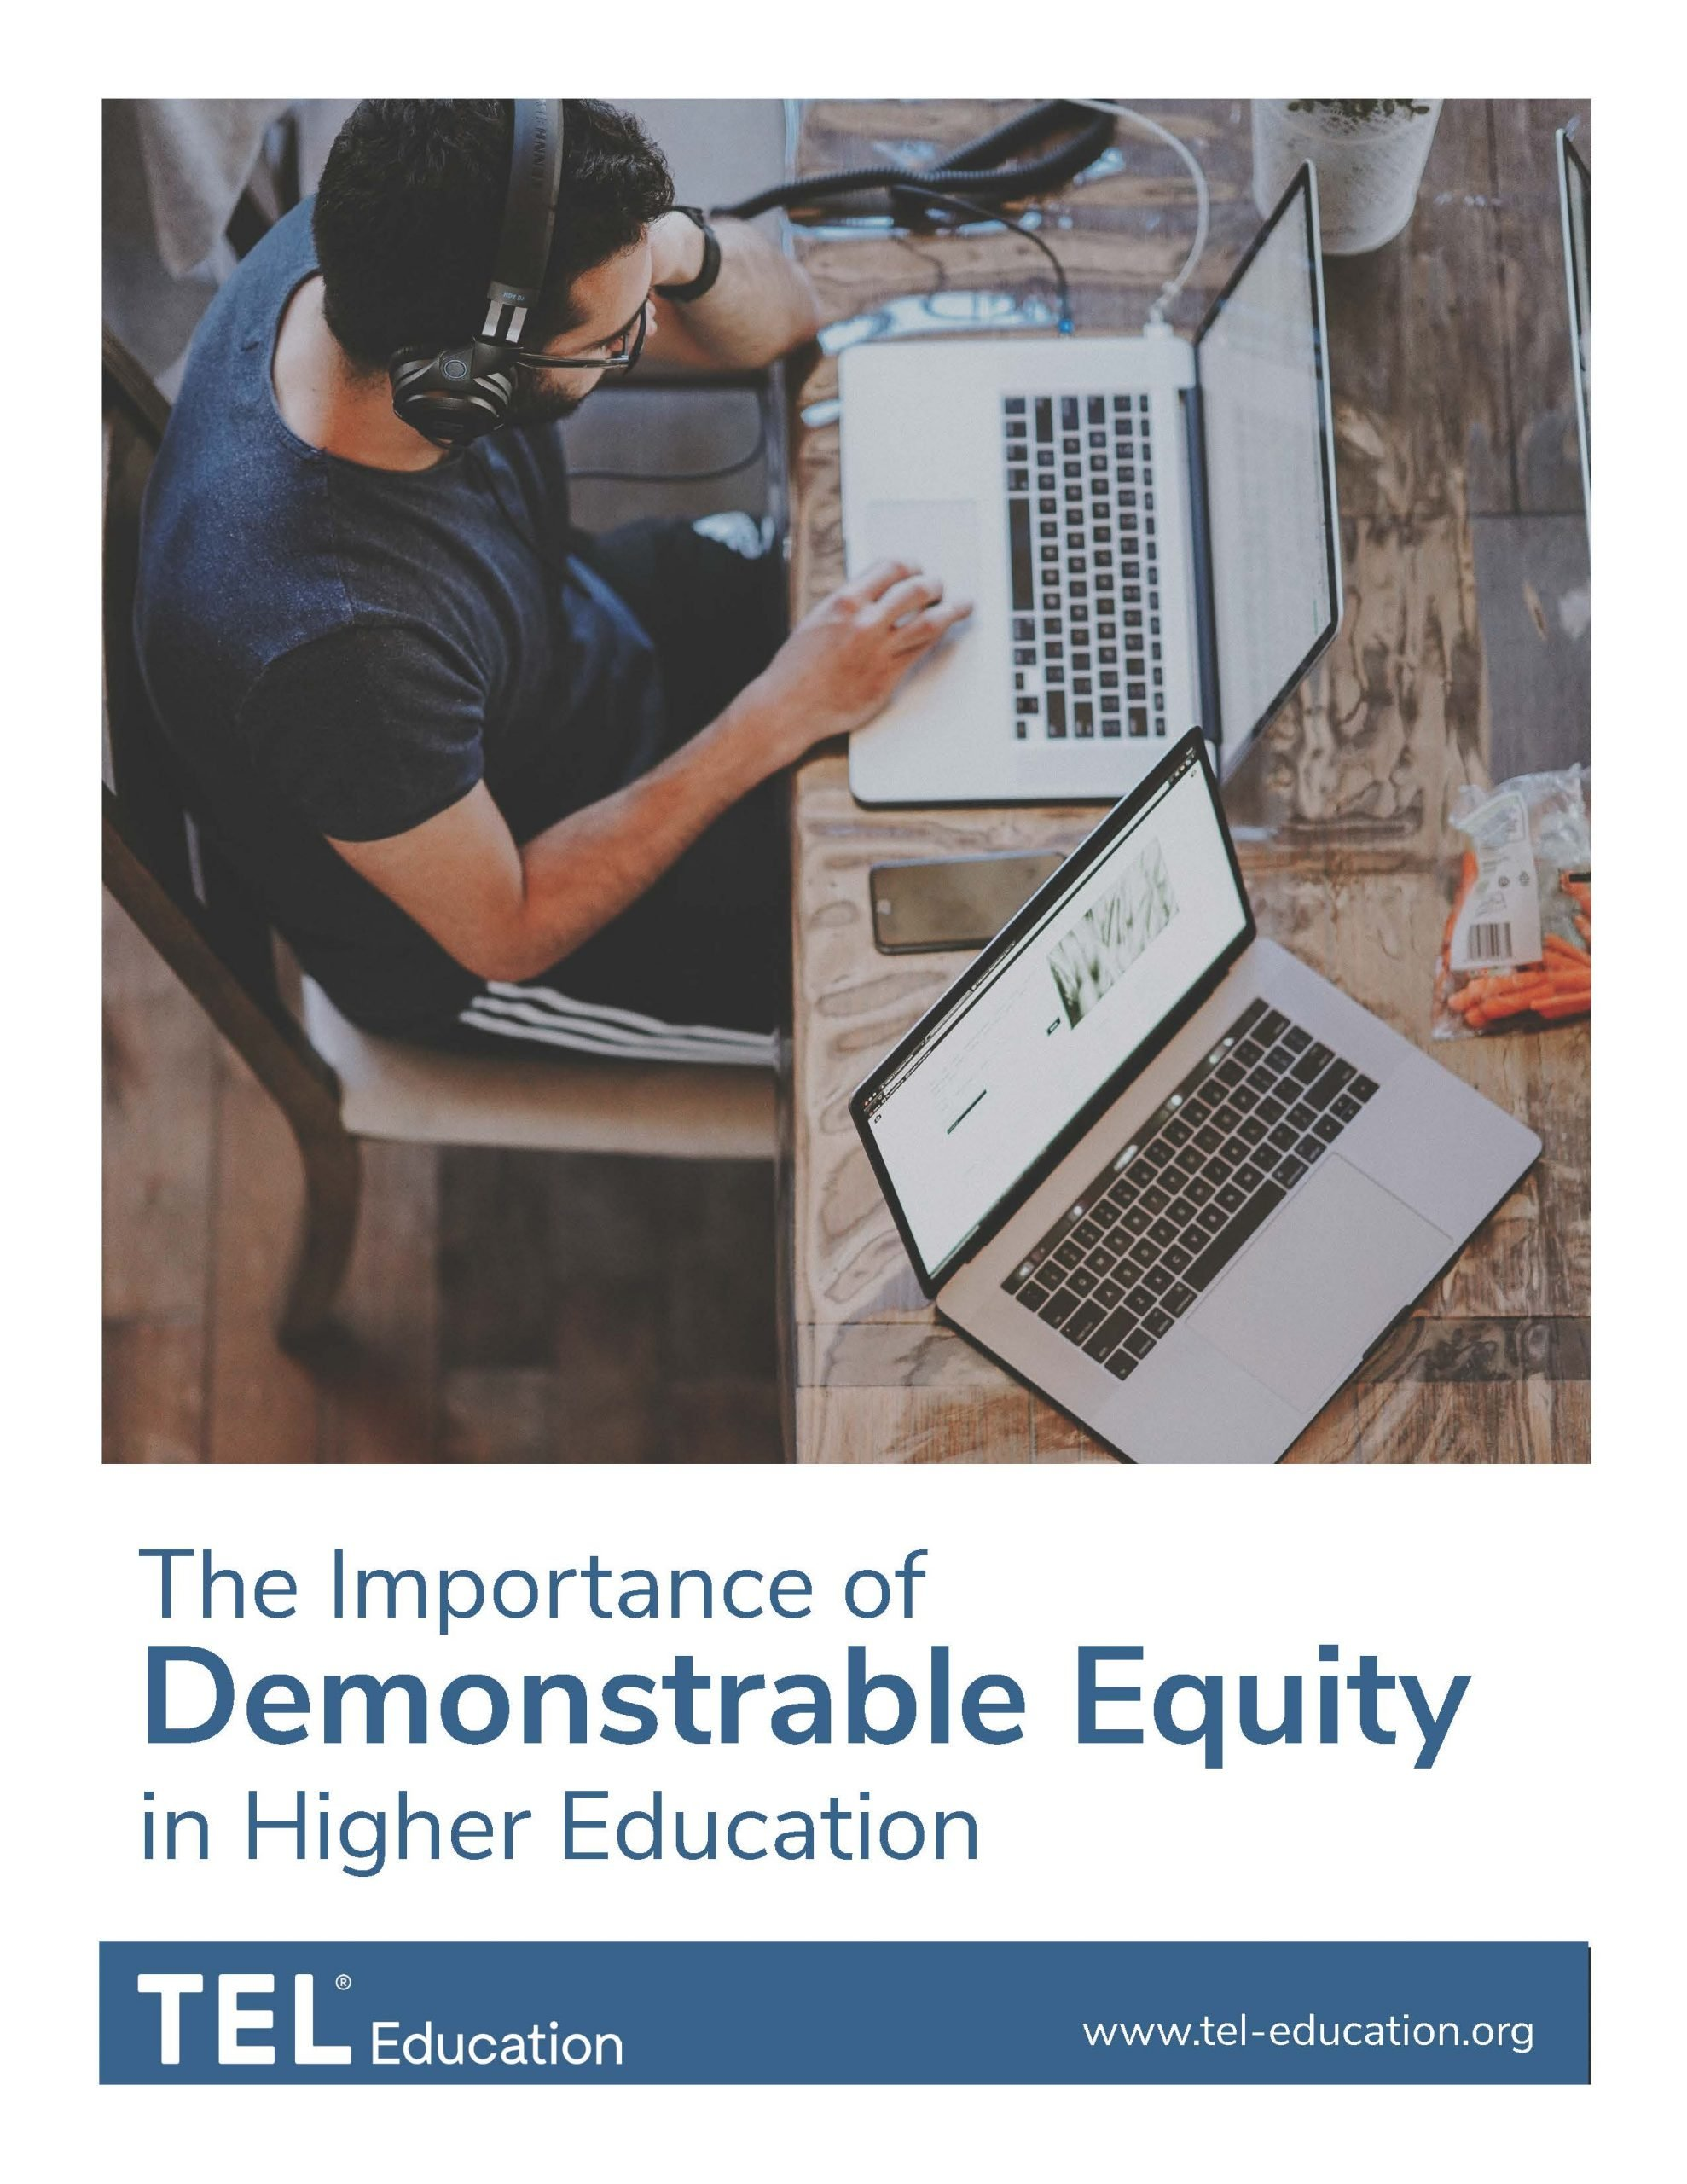 The Importance of Demonstrable Equity in Higher Education